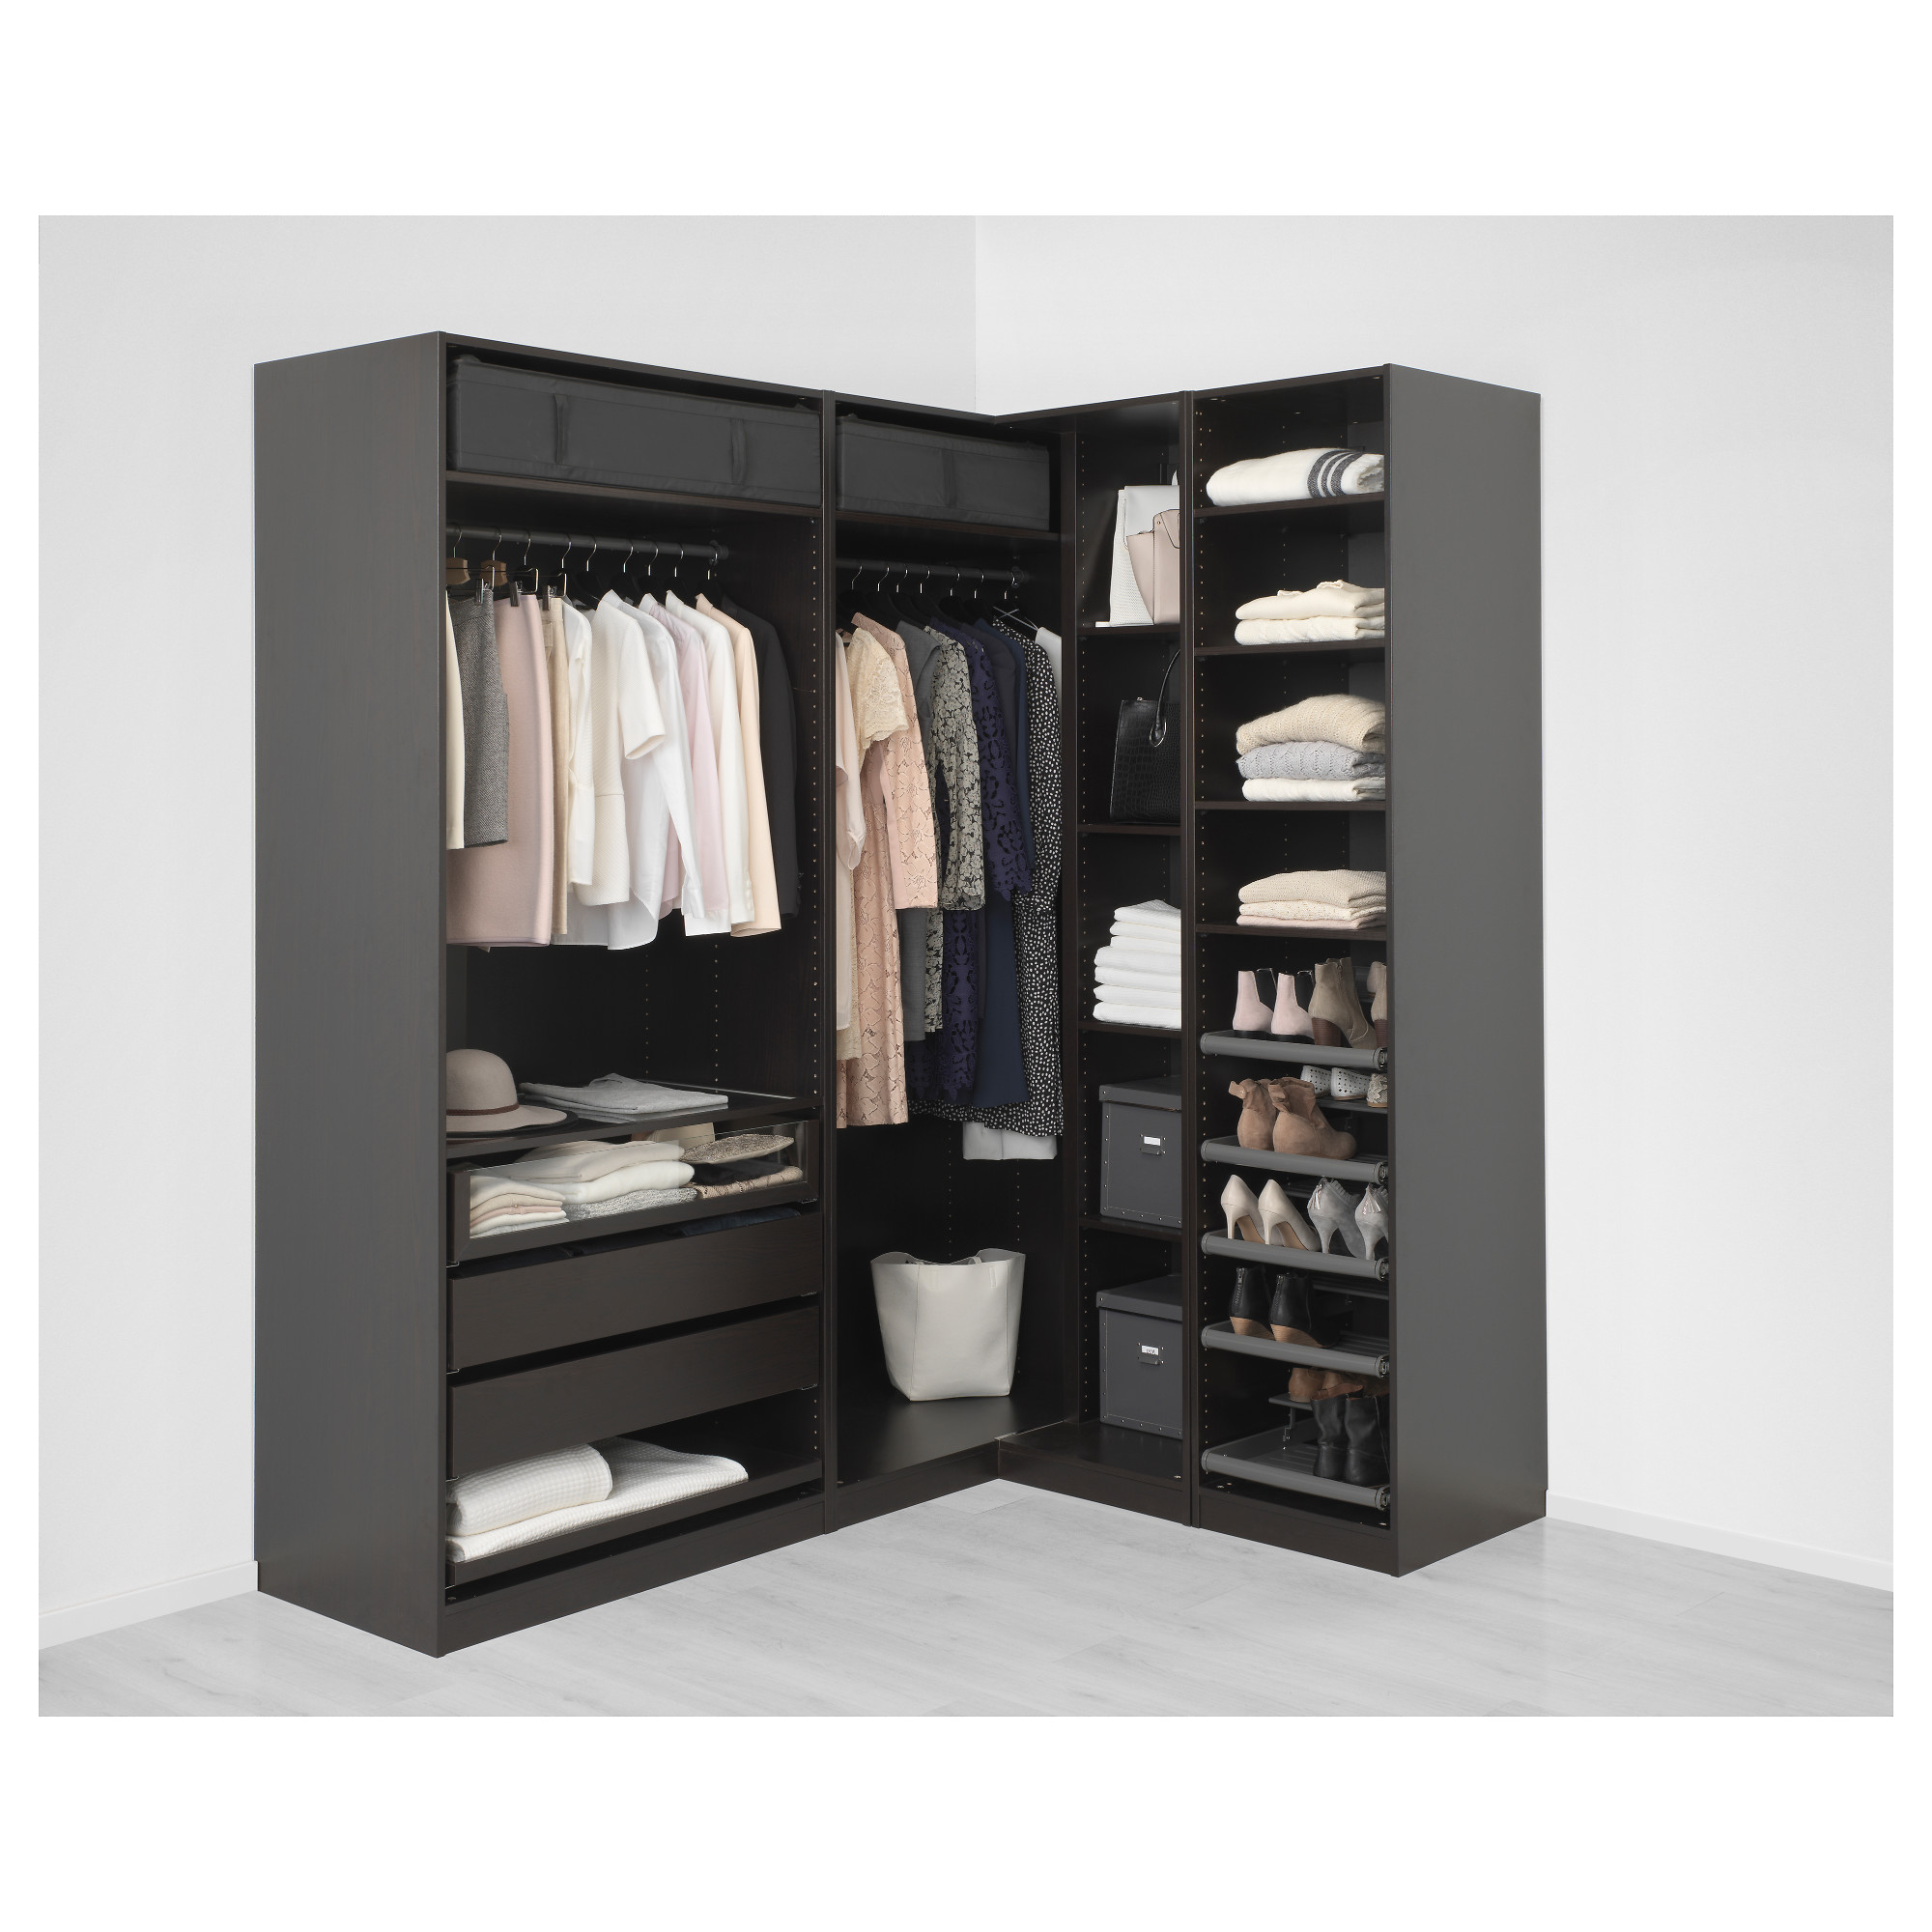 Add On Corner Unit With 4 Shelves Pax Black Brown